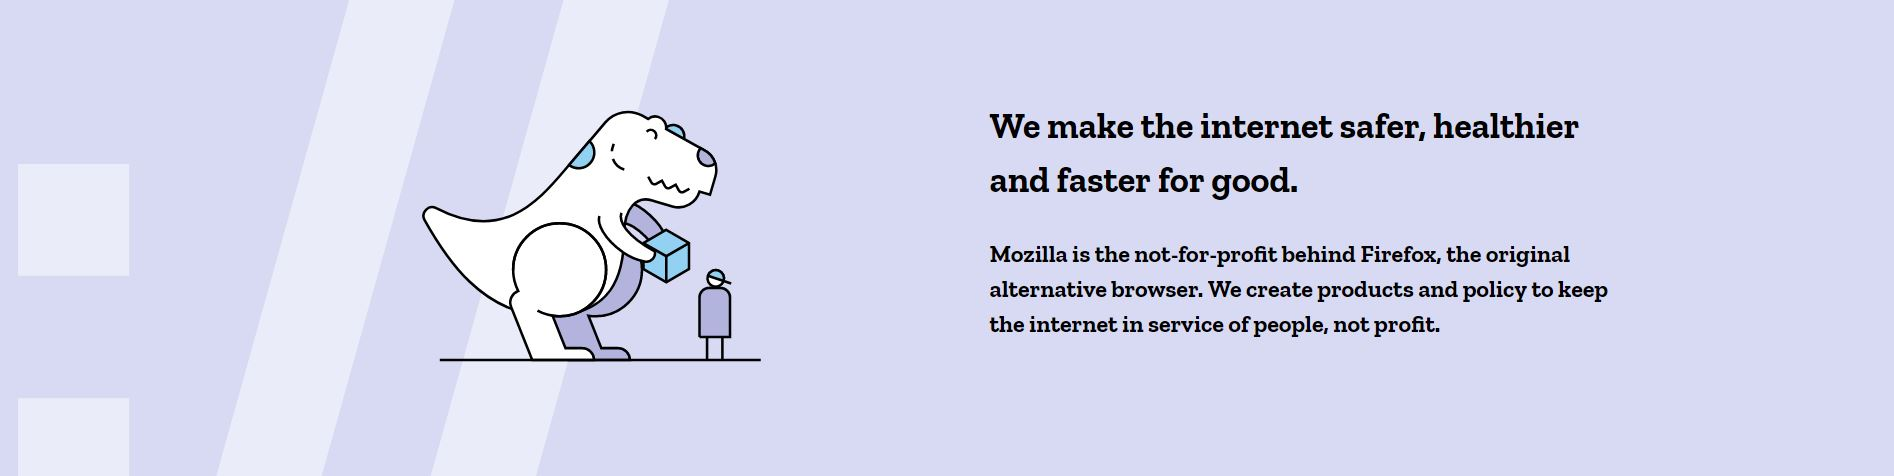 mozilla capture